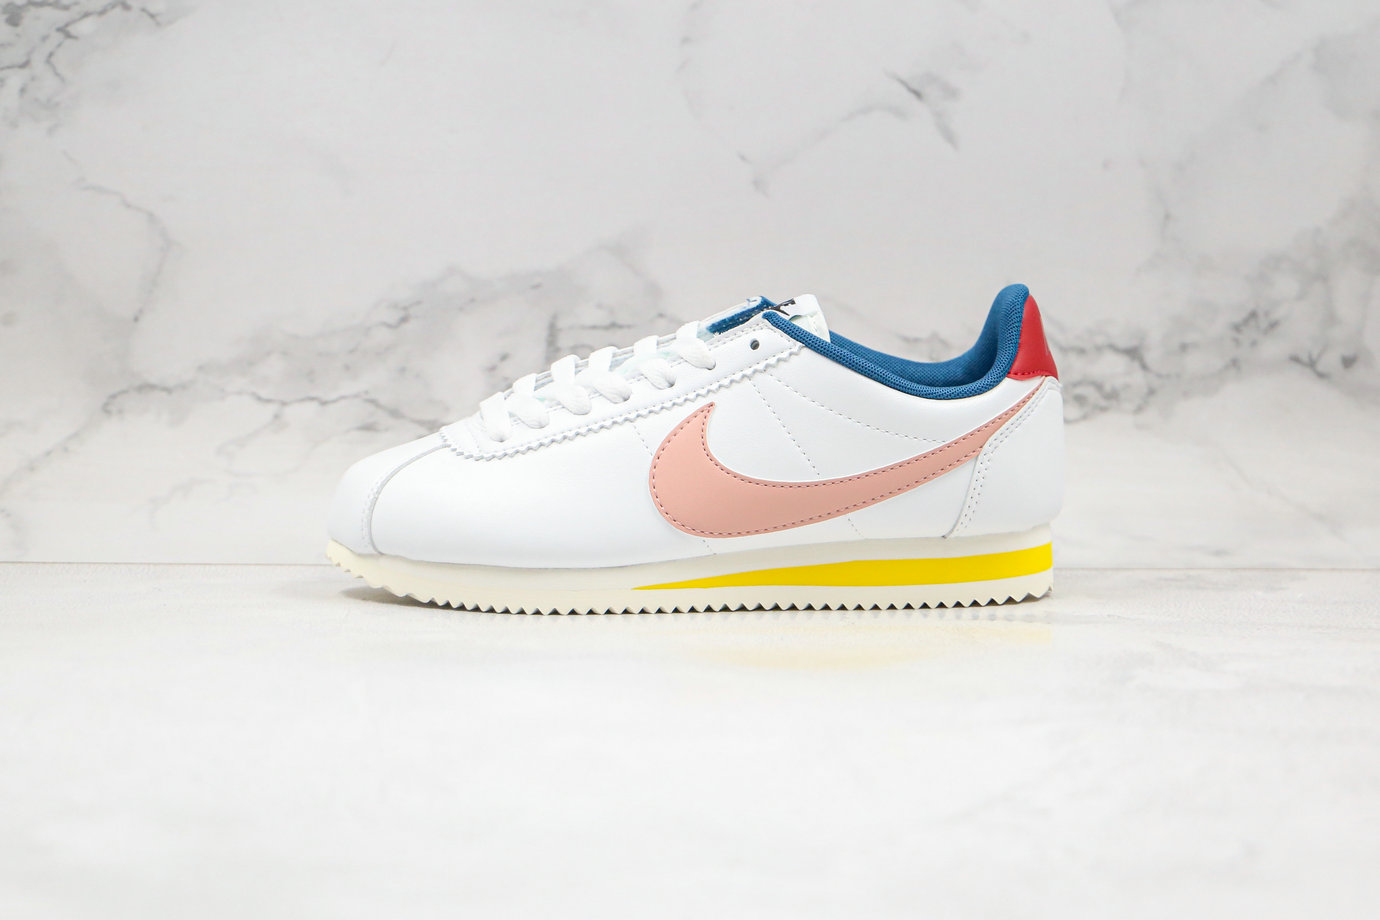 2020 Cheapest Nike Classic Cortez Leather Summit White Coral Stardust 807471-114